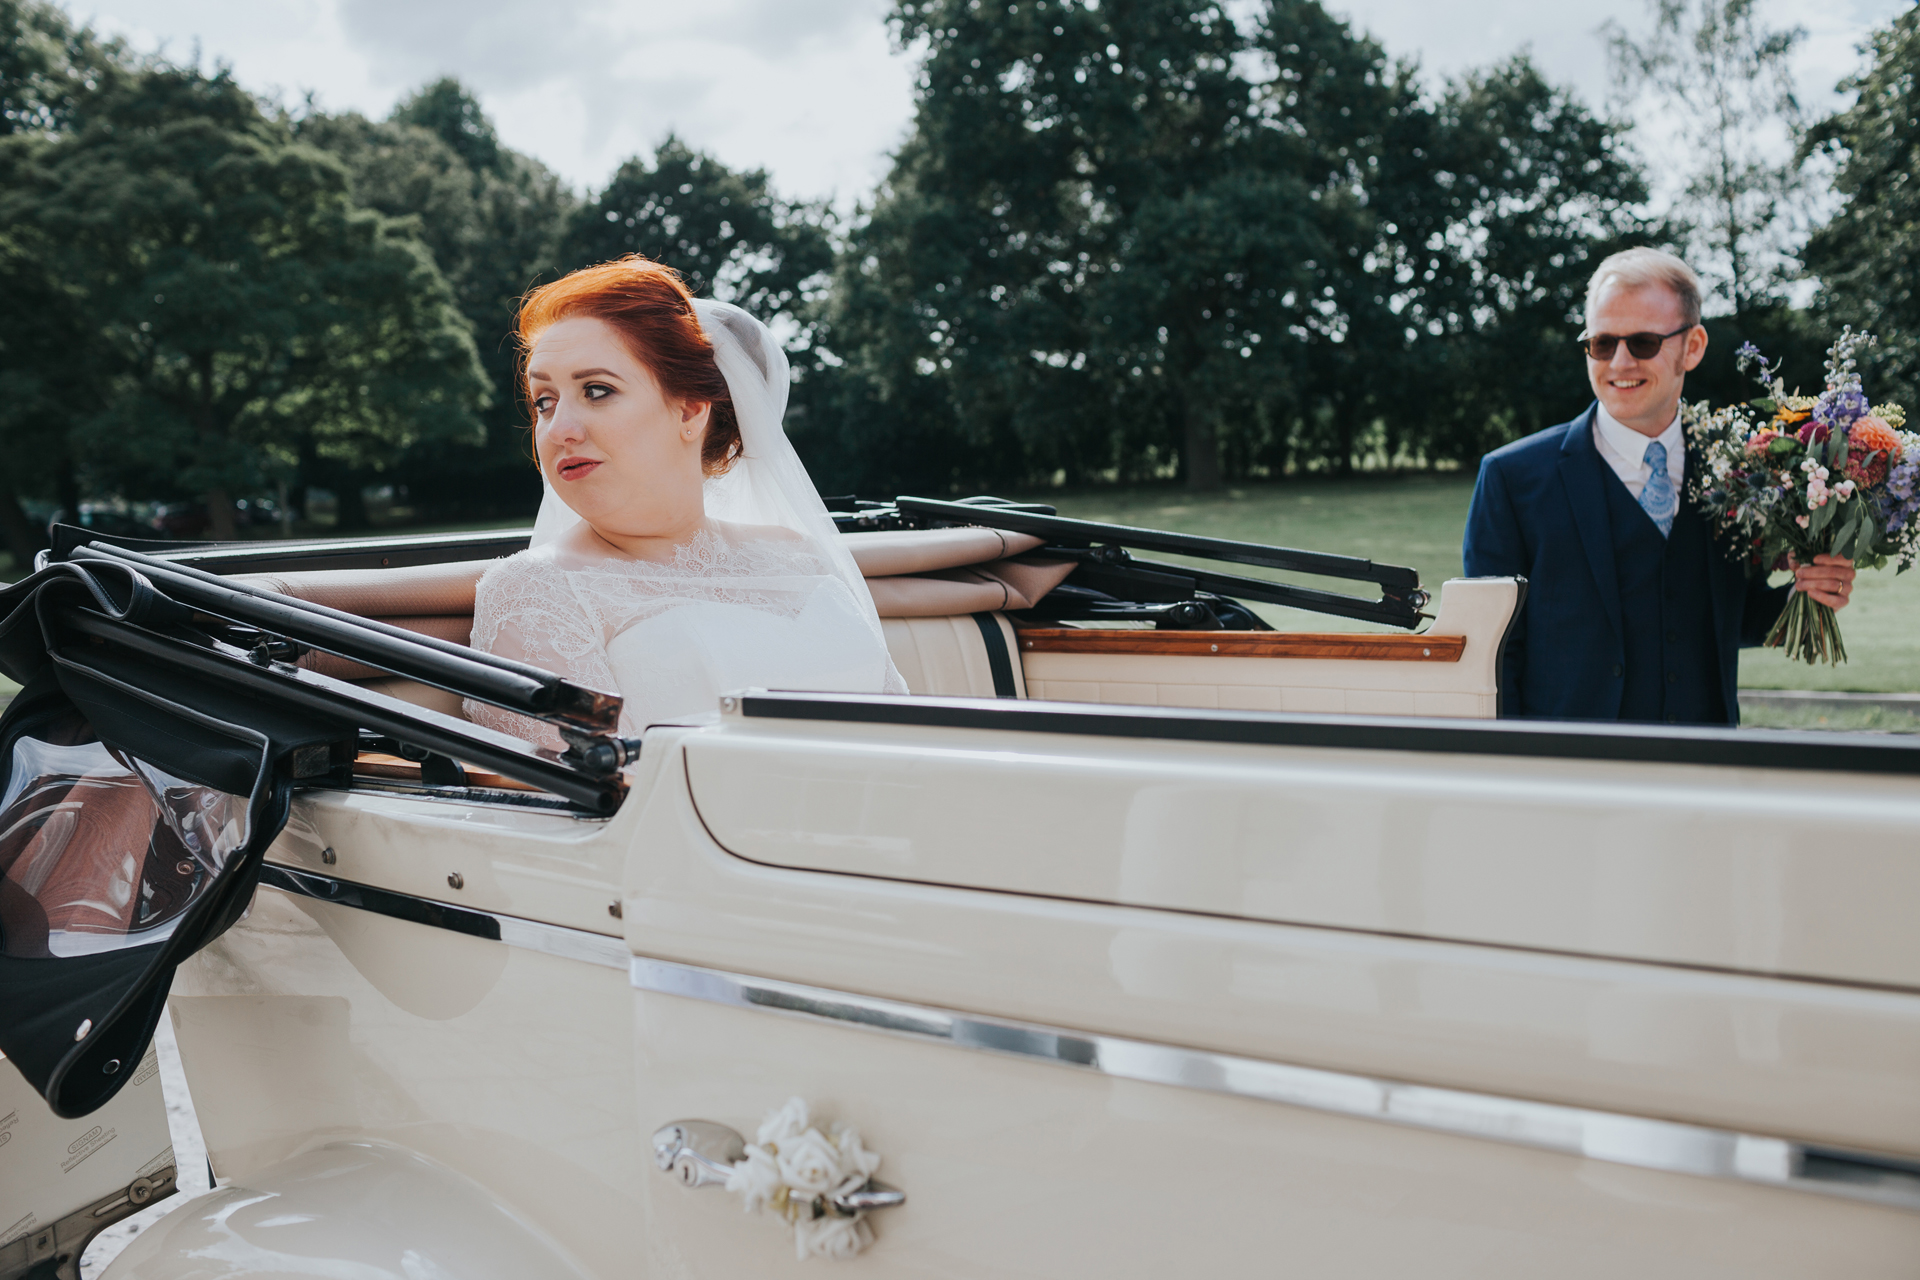 Bride and groom arrive at Trafford hall in their wedding car.